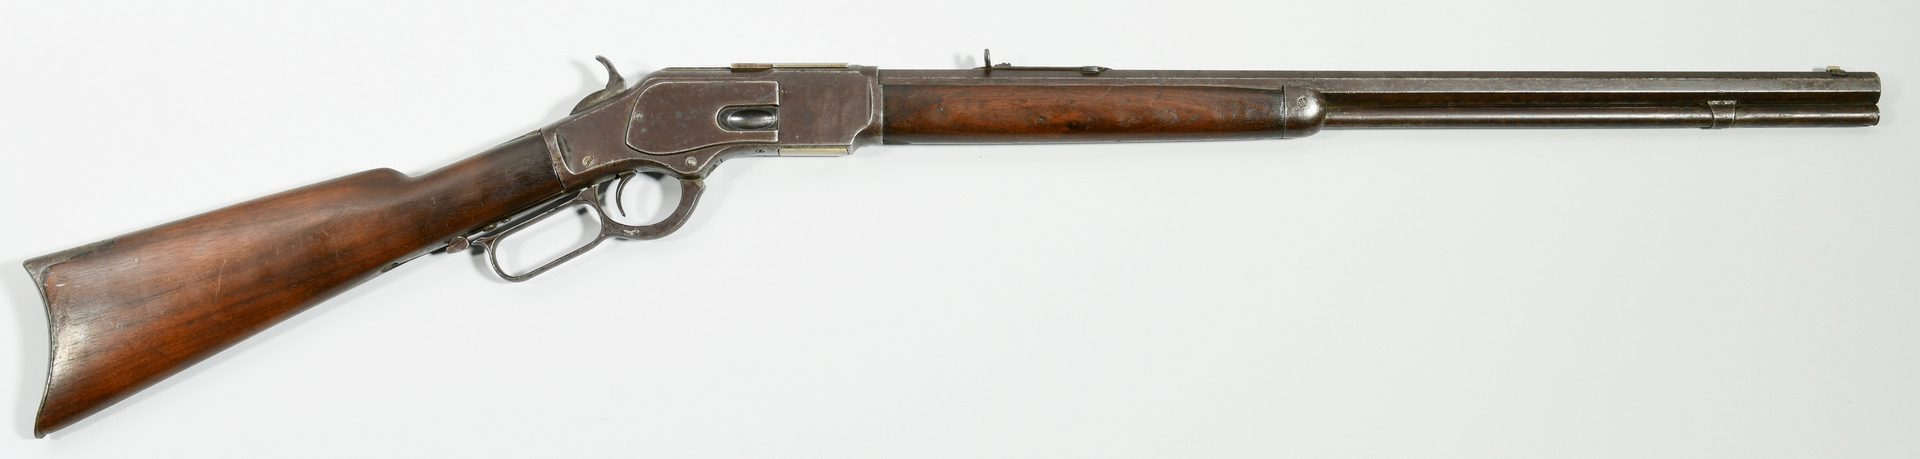 Lot 308: Winchester 1873 3rd Model Rifle, .32-.20 Caliber